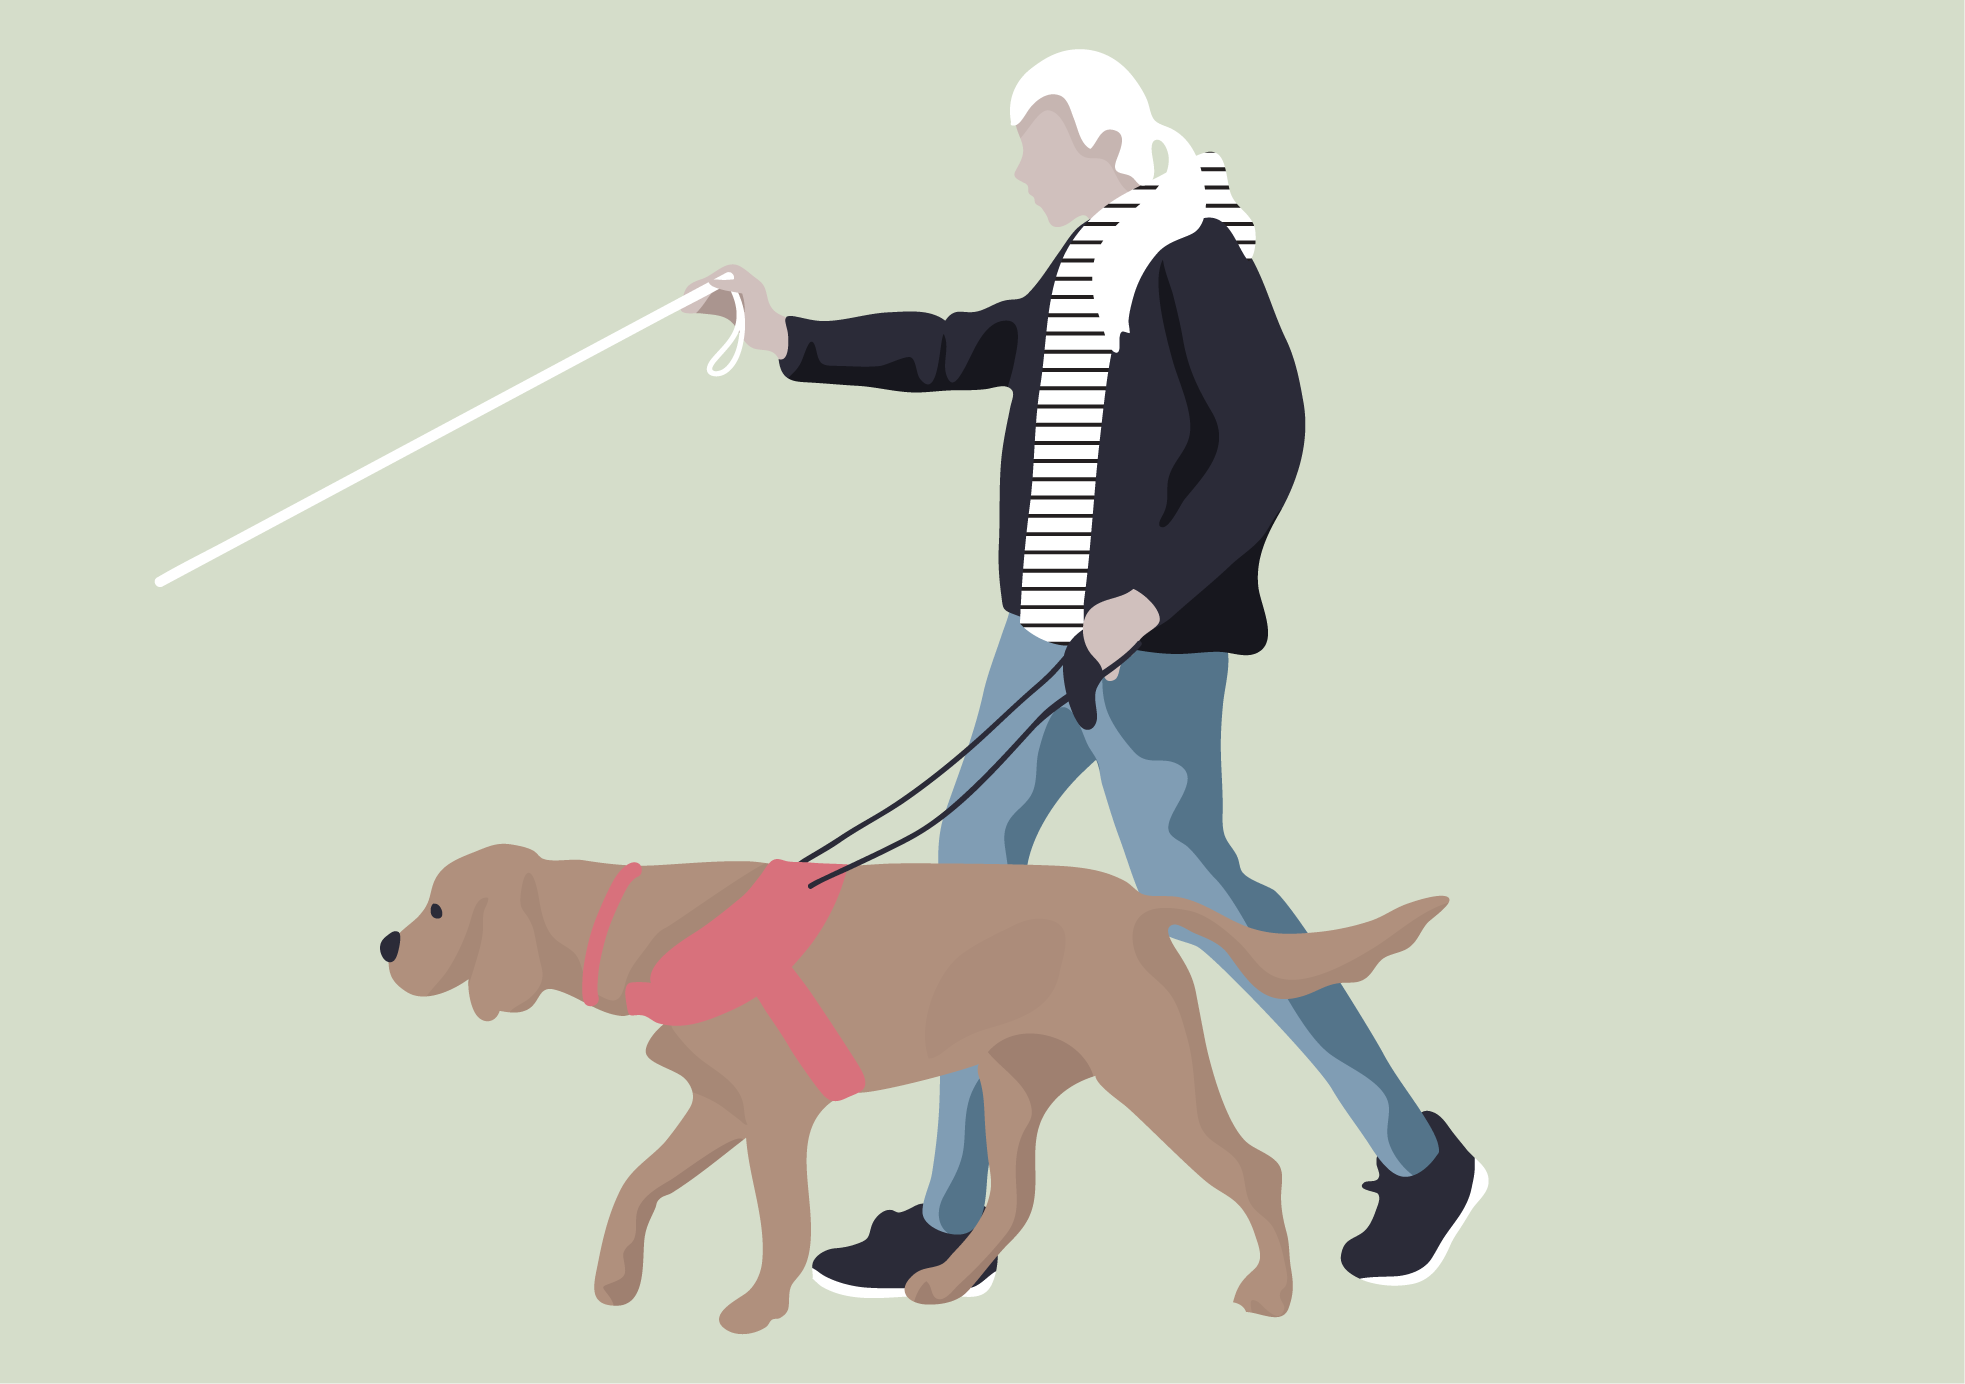 Flat Vector Blind Man With A Dog Illustration People Illustration Beginner Photo Editing Photoshop Actions